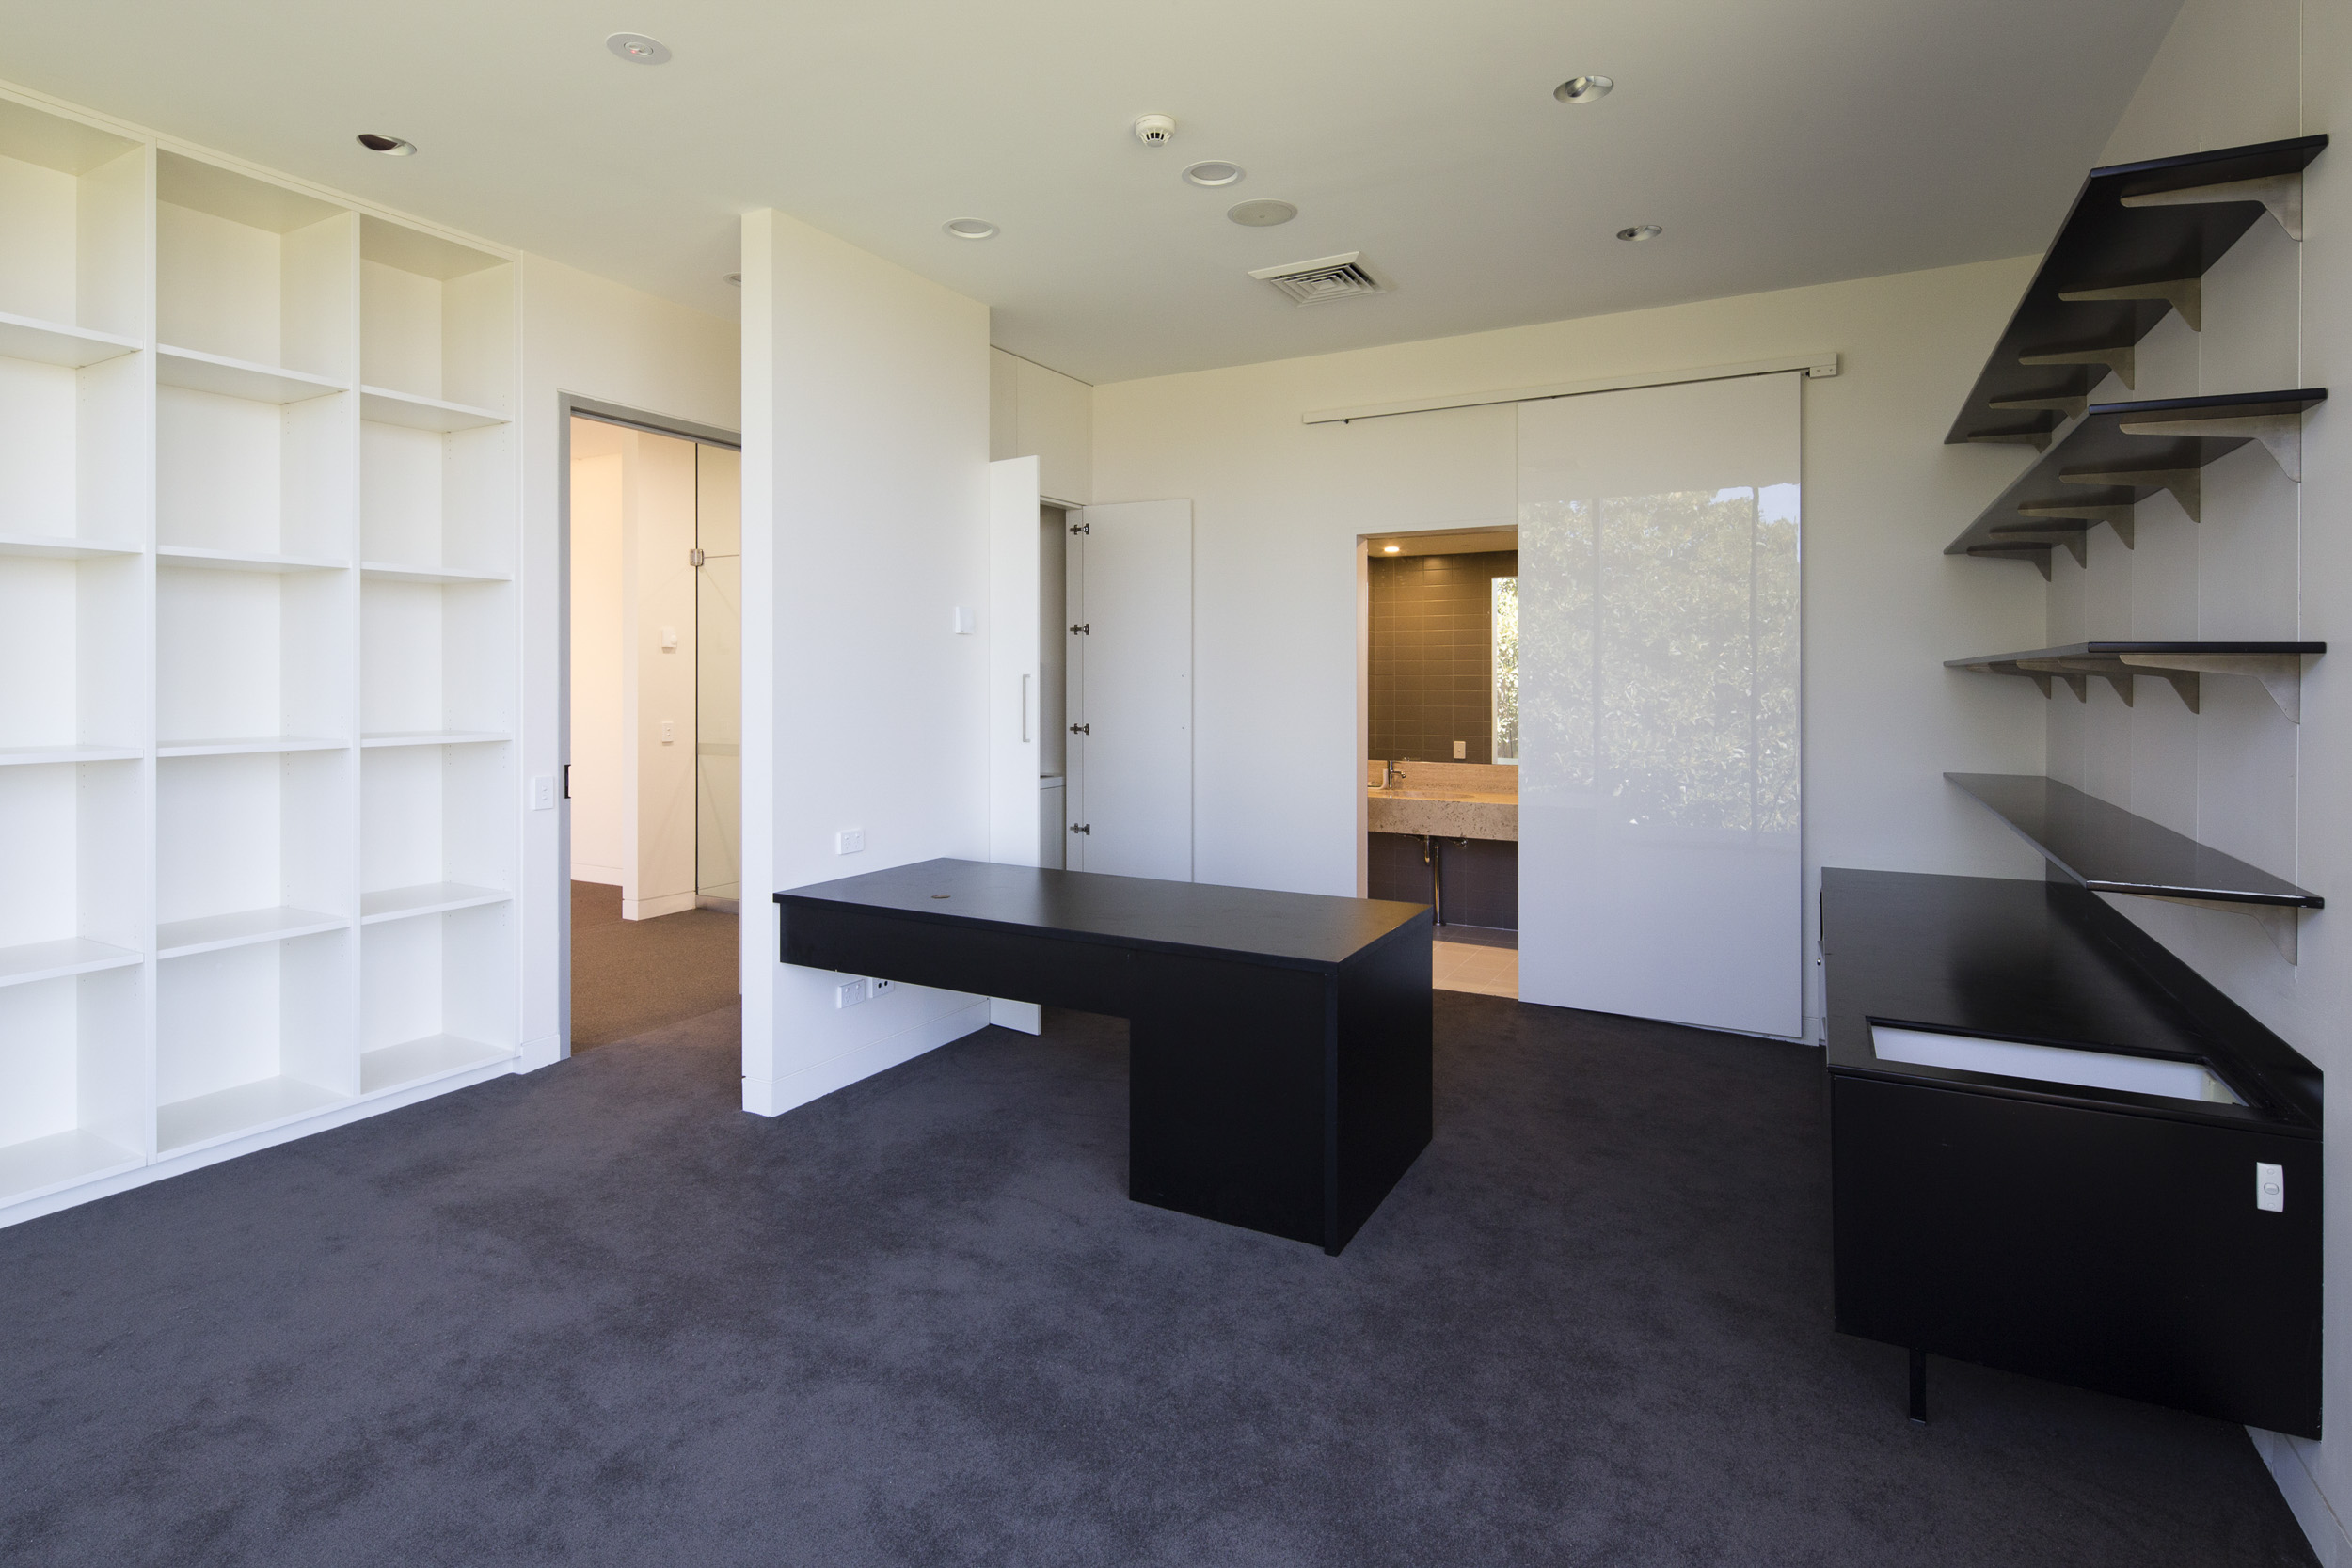 workplace_interior_design_sydney_38.jpg